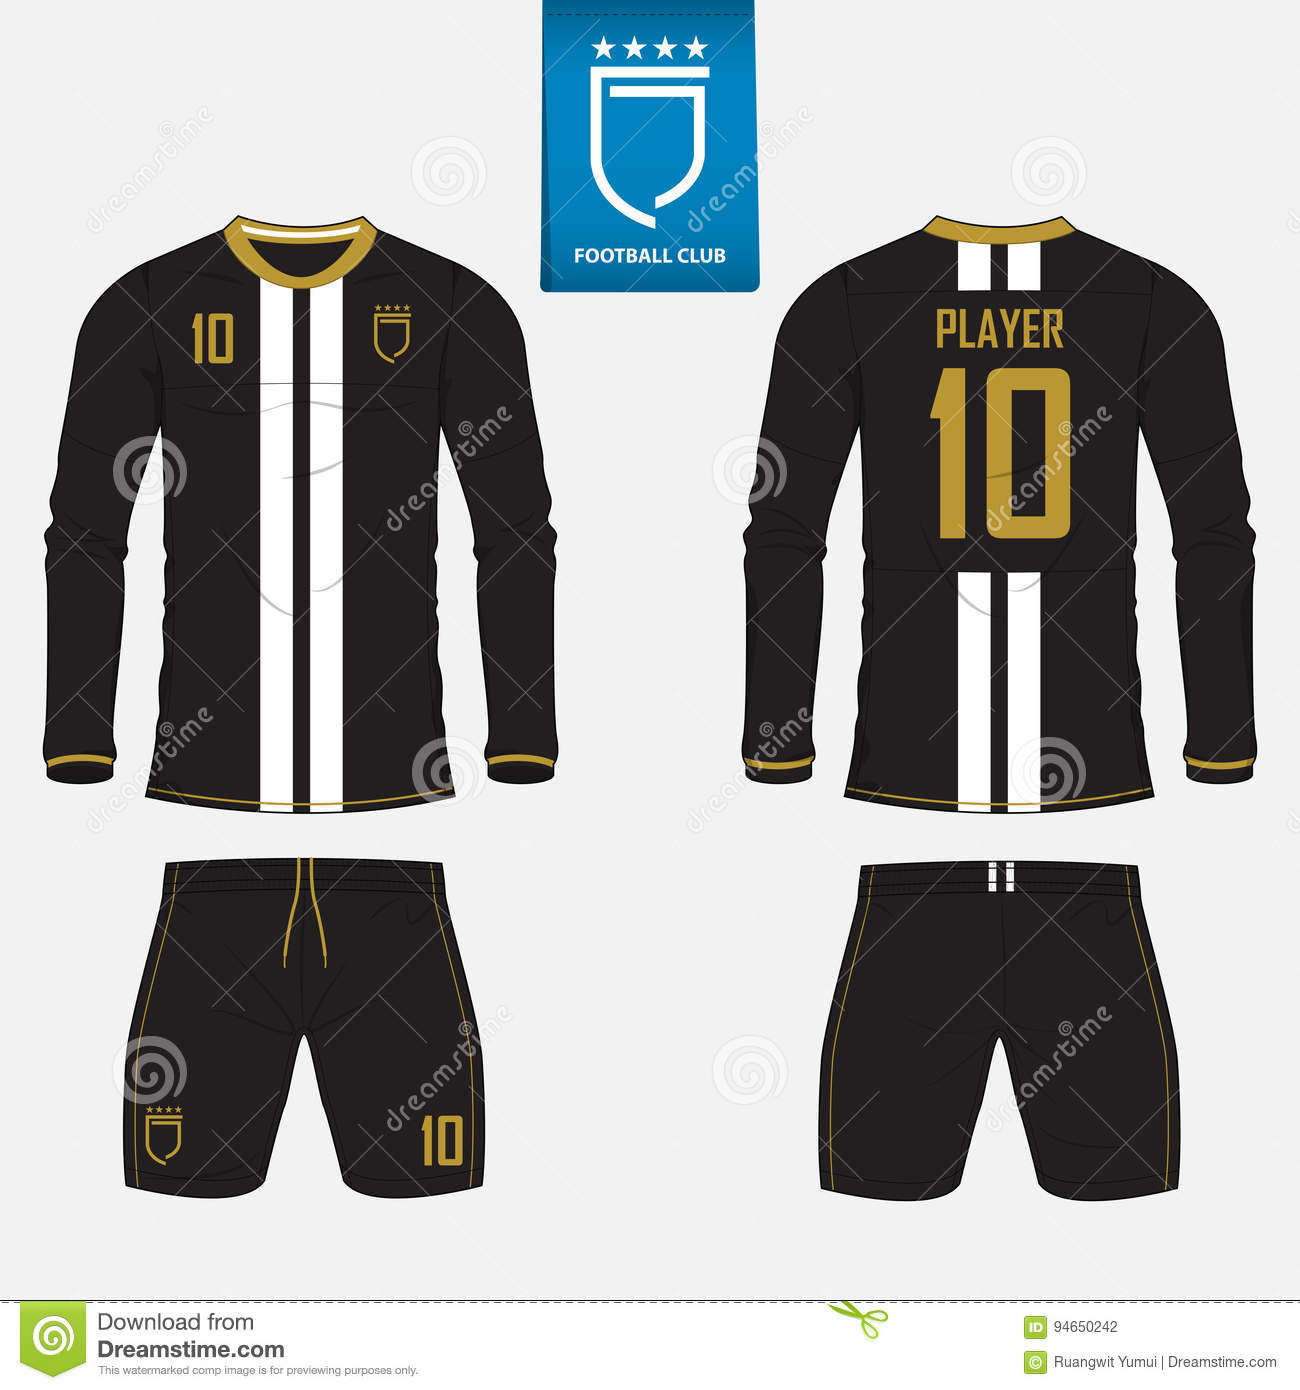 Long sleeve soccer jersey or football kit template for football club. Football  shirt mock up 8bfea5e2b